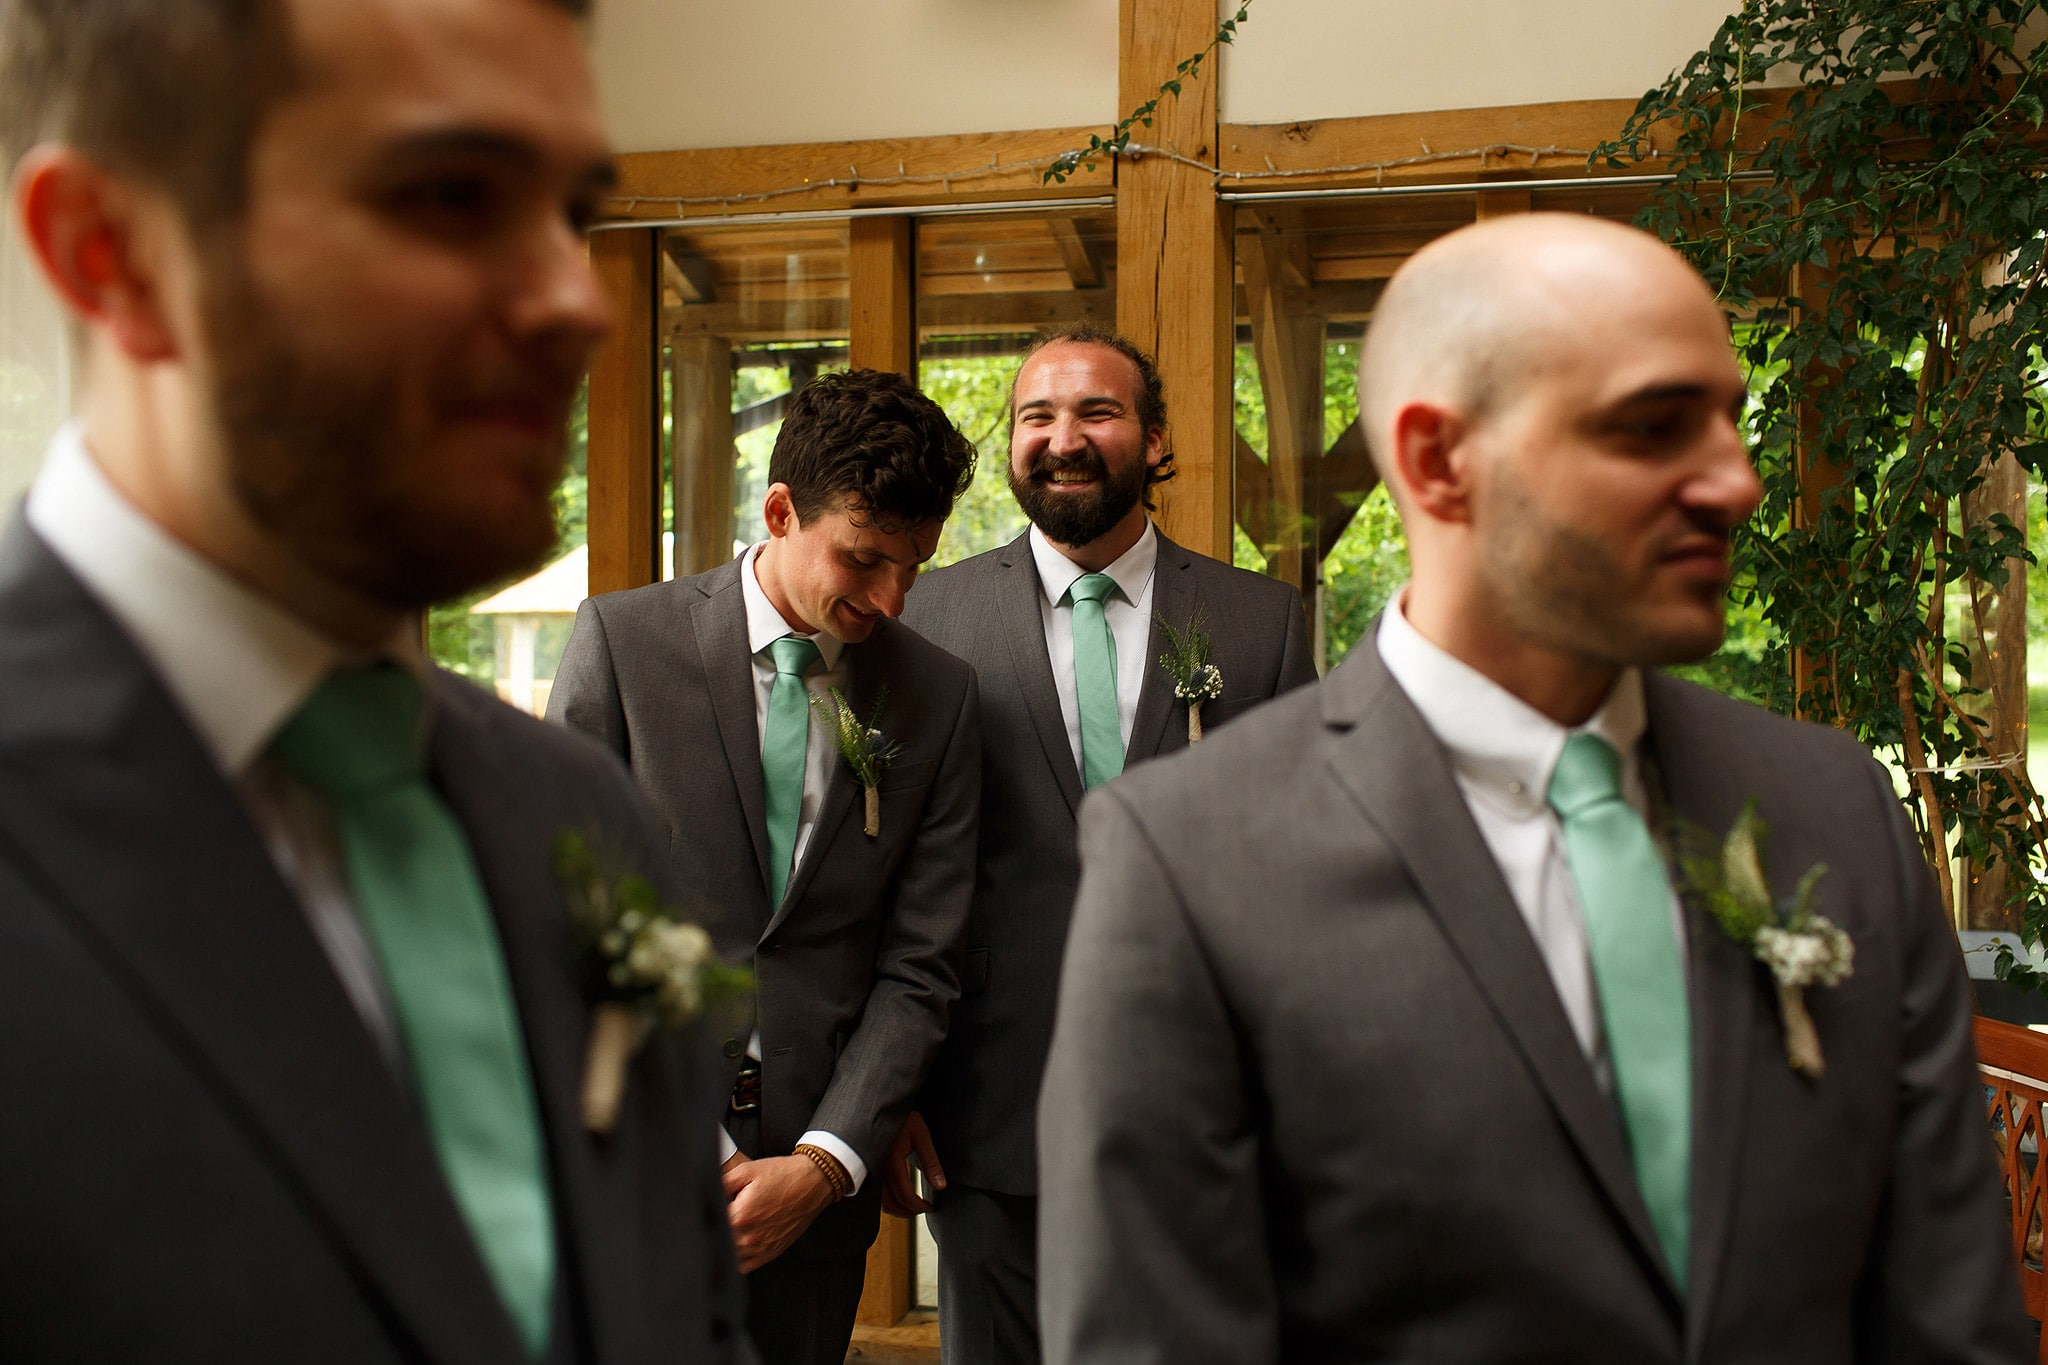 Groomsmen waiting at the top of the wedding aisle wearing grey suits and mint green ties